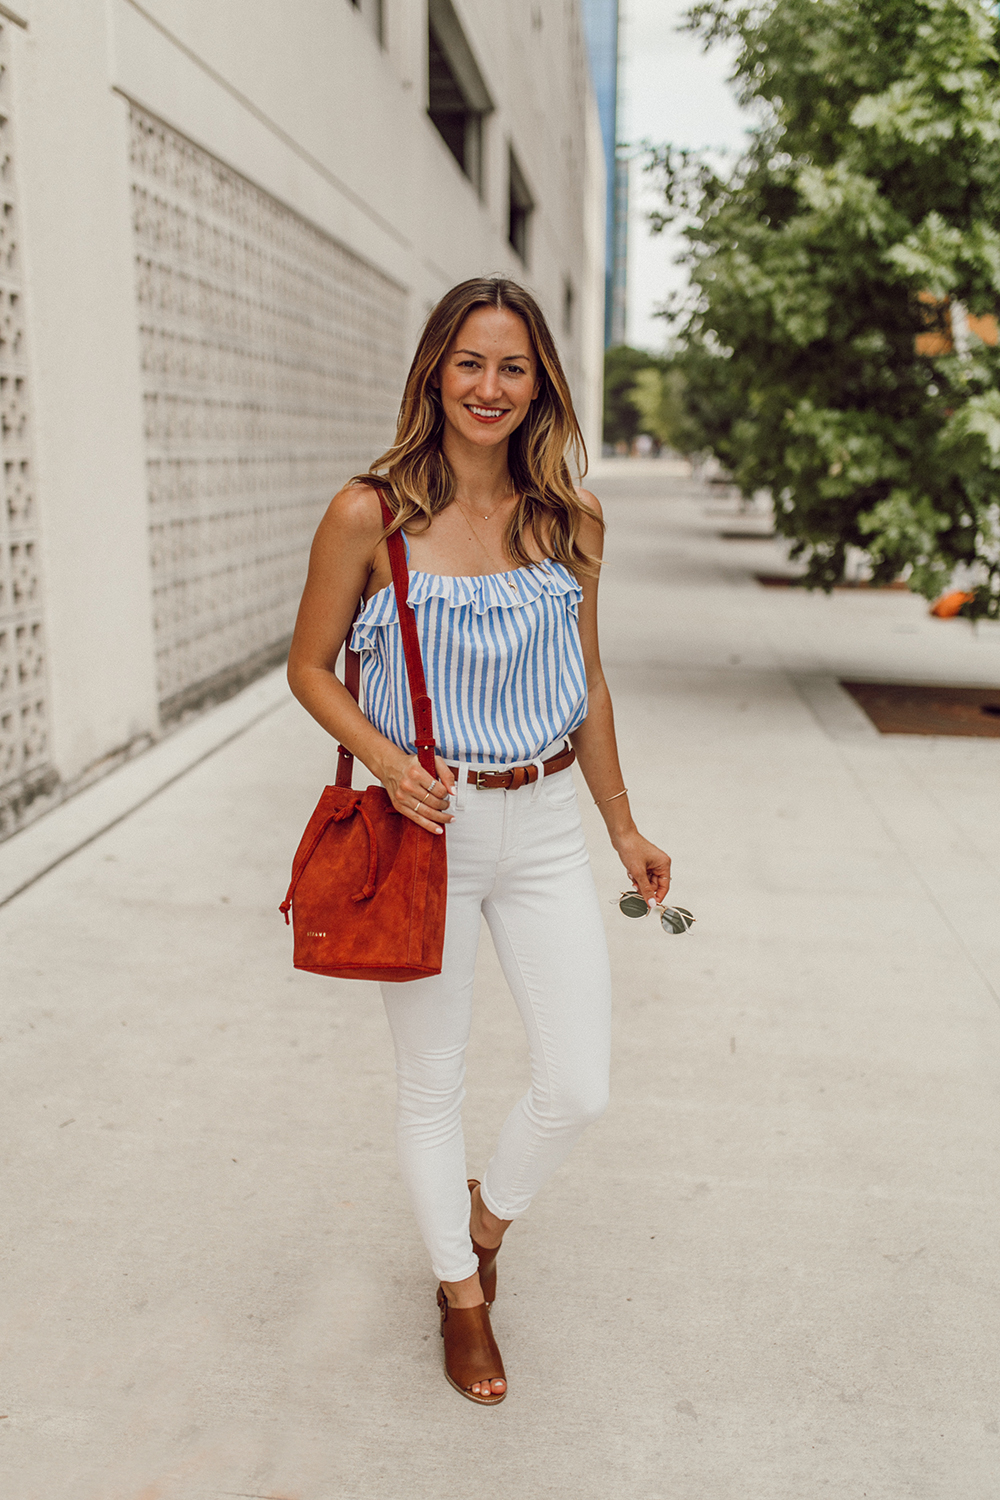 livvyland-blog-olivia-watson-austin-texas-fashion-style-blogger-madewell-white-jeans-sezane-cyrille-top-4th-of-july-outfit-idea-7